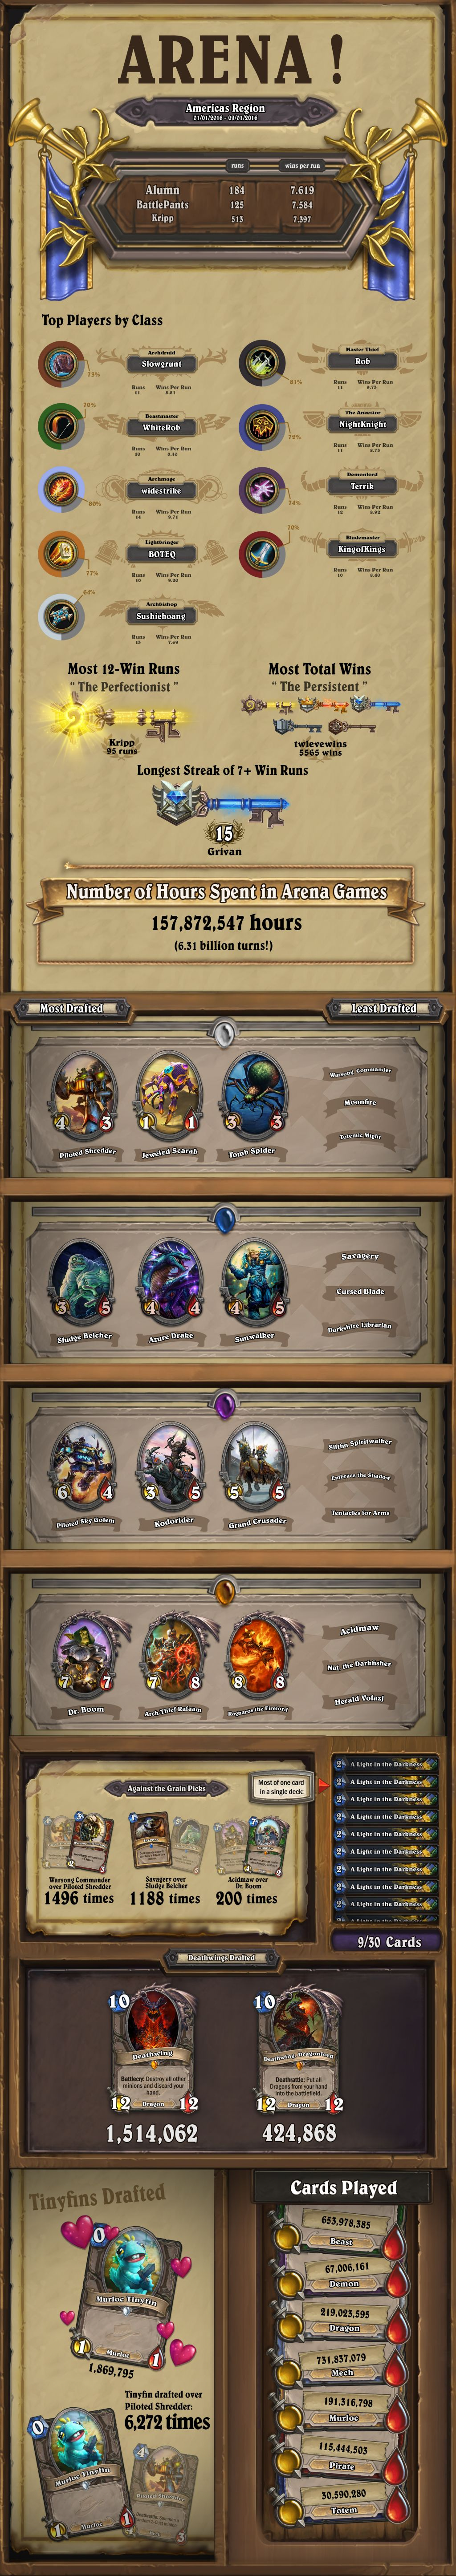 Hearthstone Inside the Arena Infographic